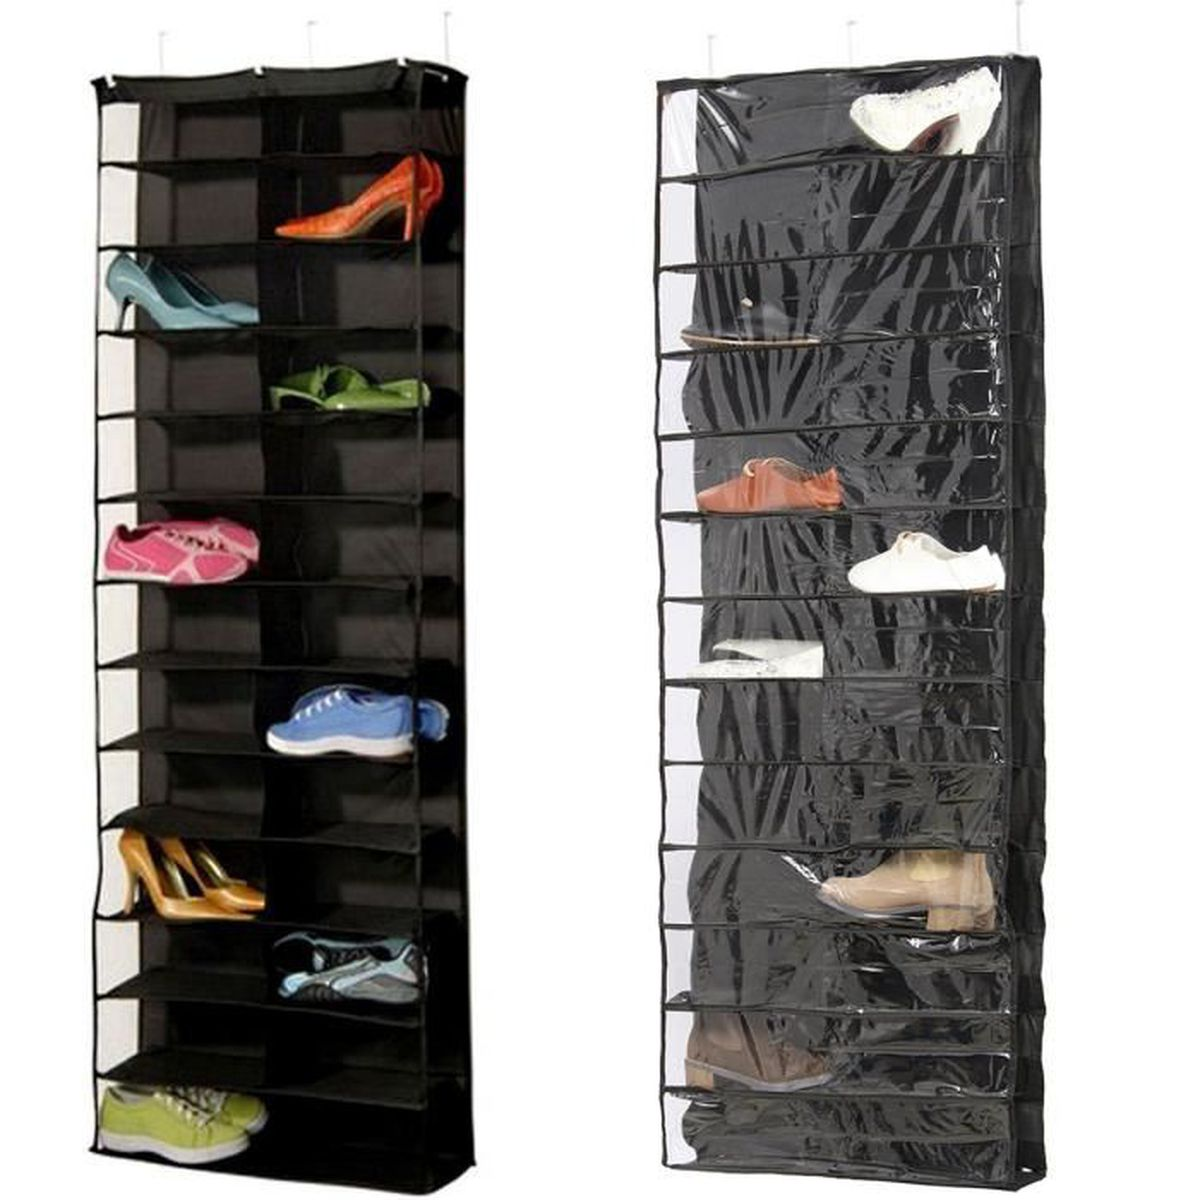 26 paires meuble de rangement armoire chaussures suspendu organisateur hanging achat vente. Black Bedroom Furniture Sets. Home Design Ideas